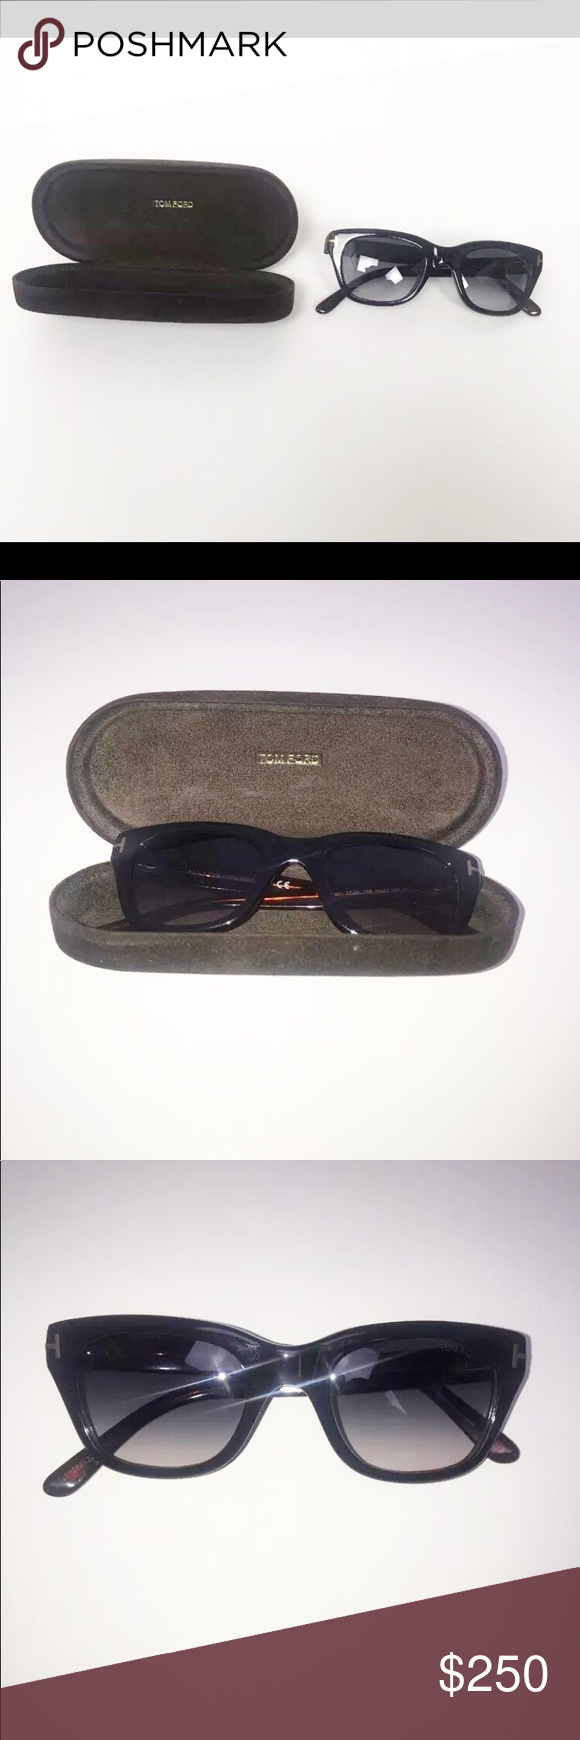 60ae0a382be8c Case included. Excellent Preowned Condition. AUTHENTIC! James Bond 007  SPECTRE TOM FORD Snowdon Black Sunglasses TF 237 05B Tom Ford Accessories  Sunglasses